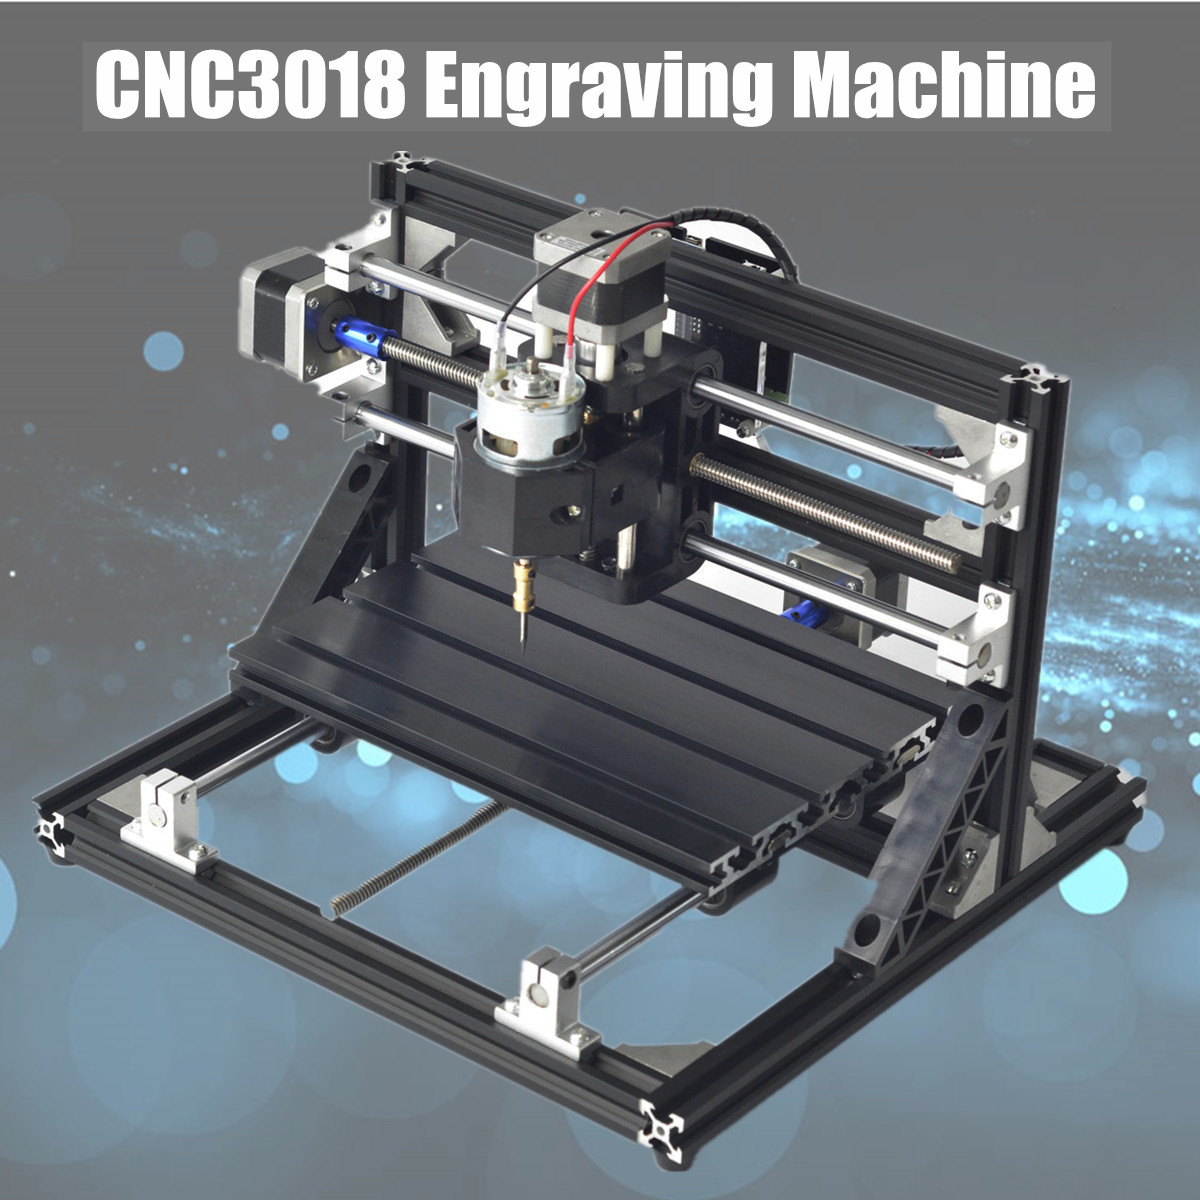 CNC3018 Diy Mini PCB PVC Milling Machine CNC Engraving Machine Laser Engraving GRBL Wood Router DIY Hobby Cutting Tools